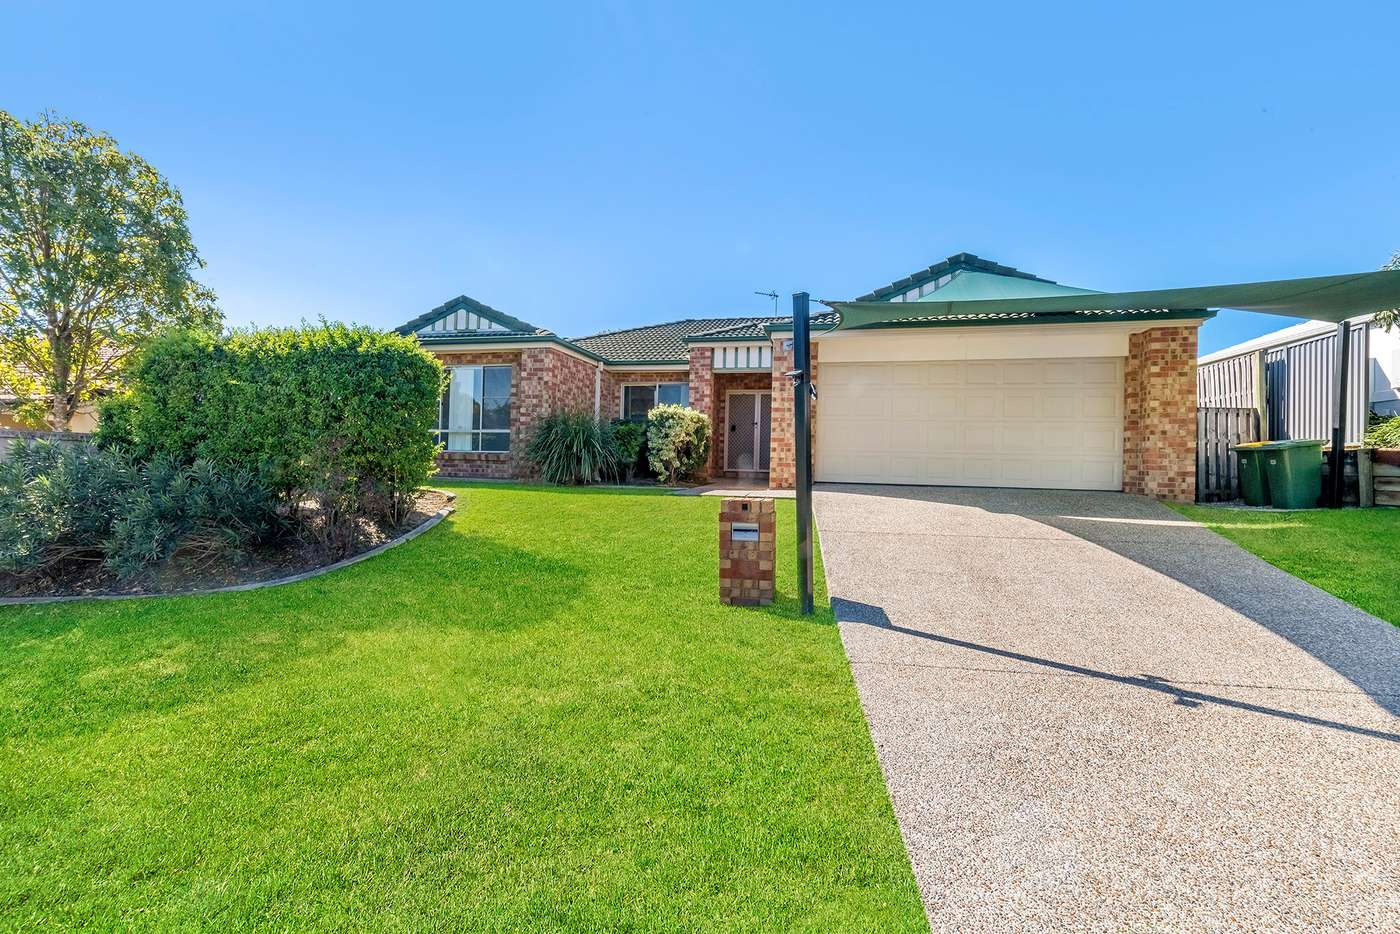 Main view of Homely house listing, 4 Cordata Court, Robina QLD 4226